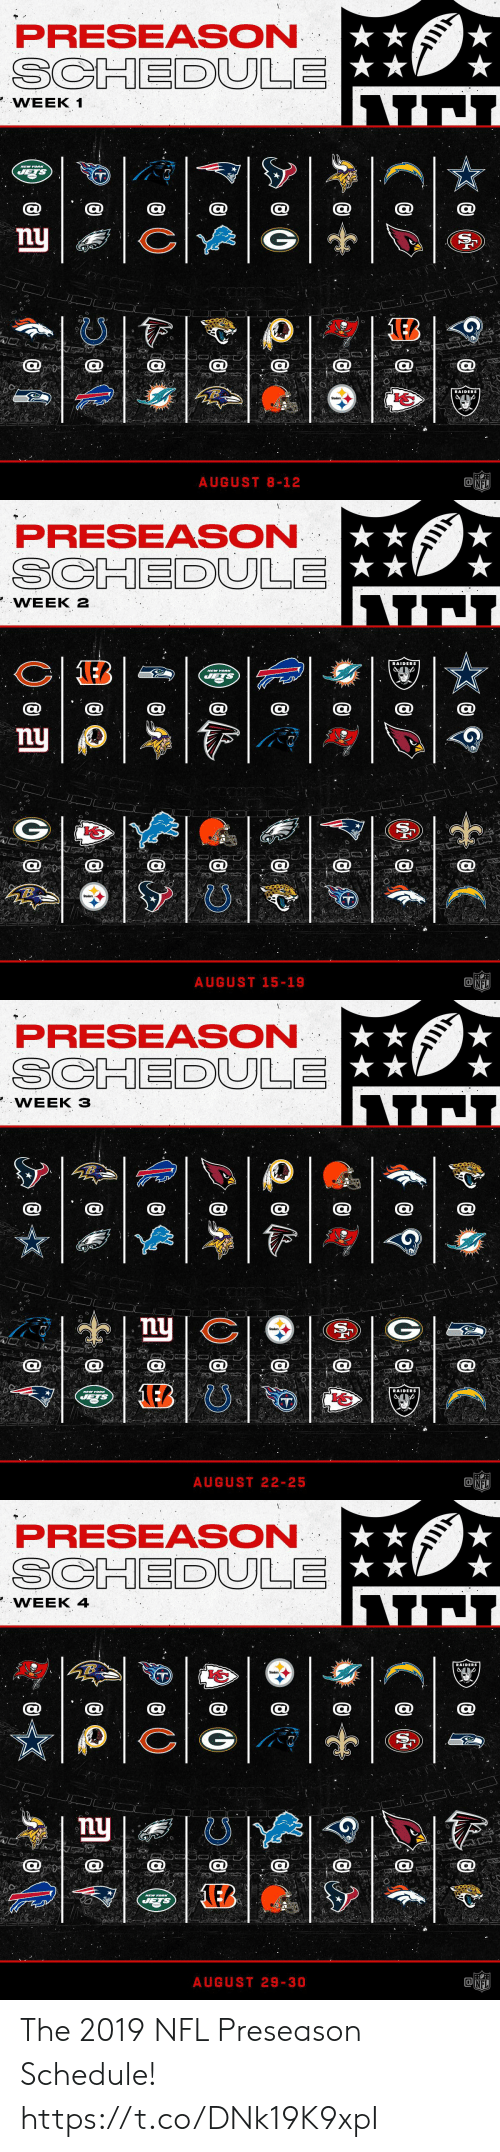 Memes, Nfl, and Nfl Preseason: PRESEASON  WEEK 1  RAIDERS  AUGUST 8-12  NFL   PRESEASON  WEEK 2  RAIDERS  AUGUST 15-19  NFL   PRESEASON  WEEK 3  RAIDERS  AUGUST 22-25   PRESEASON  WEEK 4  RAIDERS  nu  AUGUST 29-30  NFL The 2019 NFL Preseason Schedule! https://t.co/DNk19K9xpI